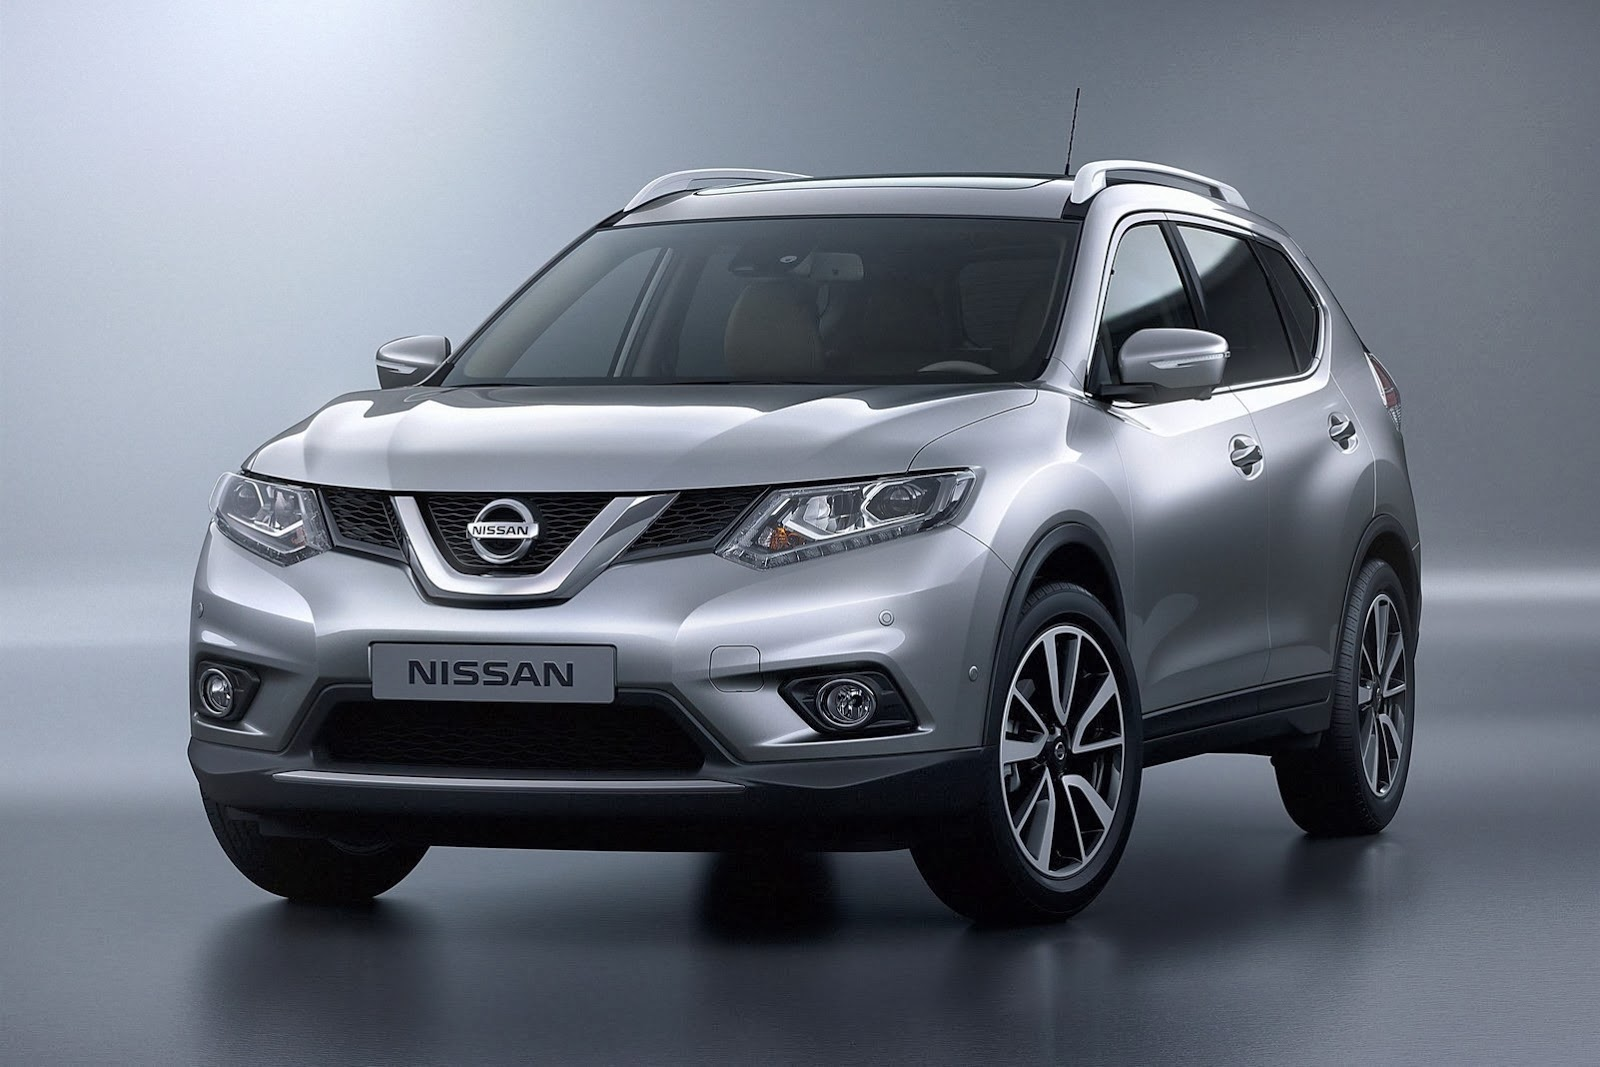 2014 Nissan Rogue For Sale >> Nissan X-Trail SUV in india 2015 |TechGangs